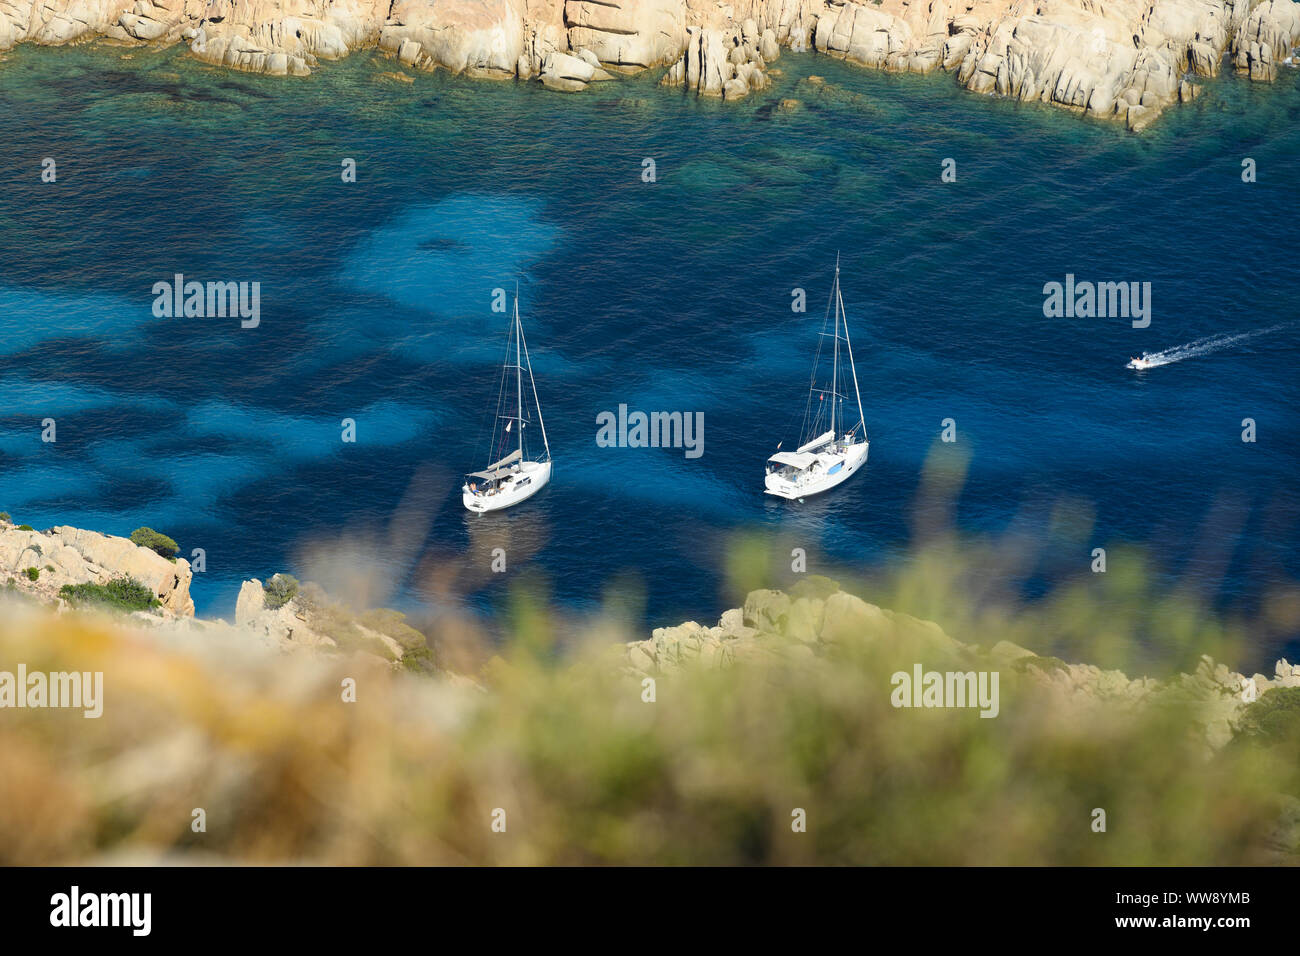 (Selective focus) View from above, stunning aerial view of two sailboats floating on a turquoise clear water. Cala Coticcio (also known as Tahiti). Stock Photo